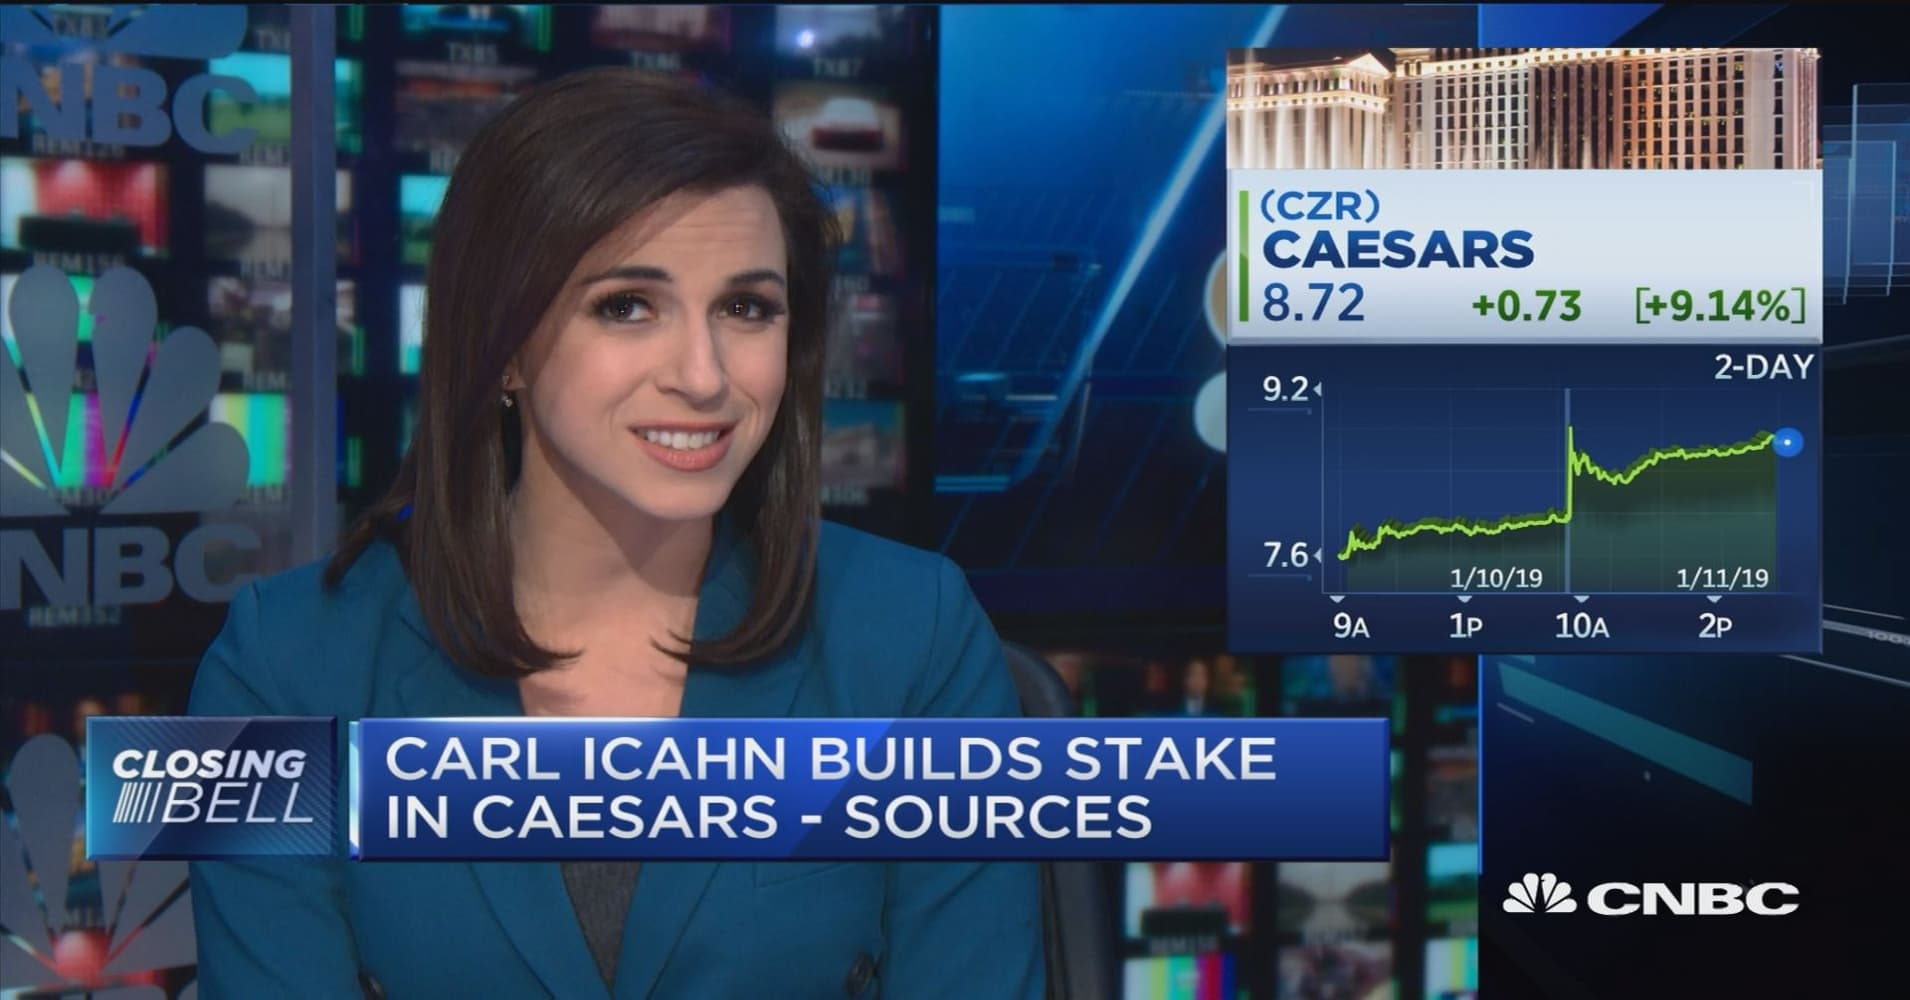 Caesars Entertainment stock soars after Carl Icahn builds stake